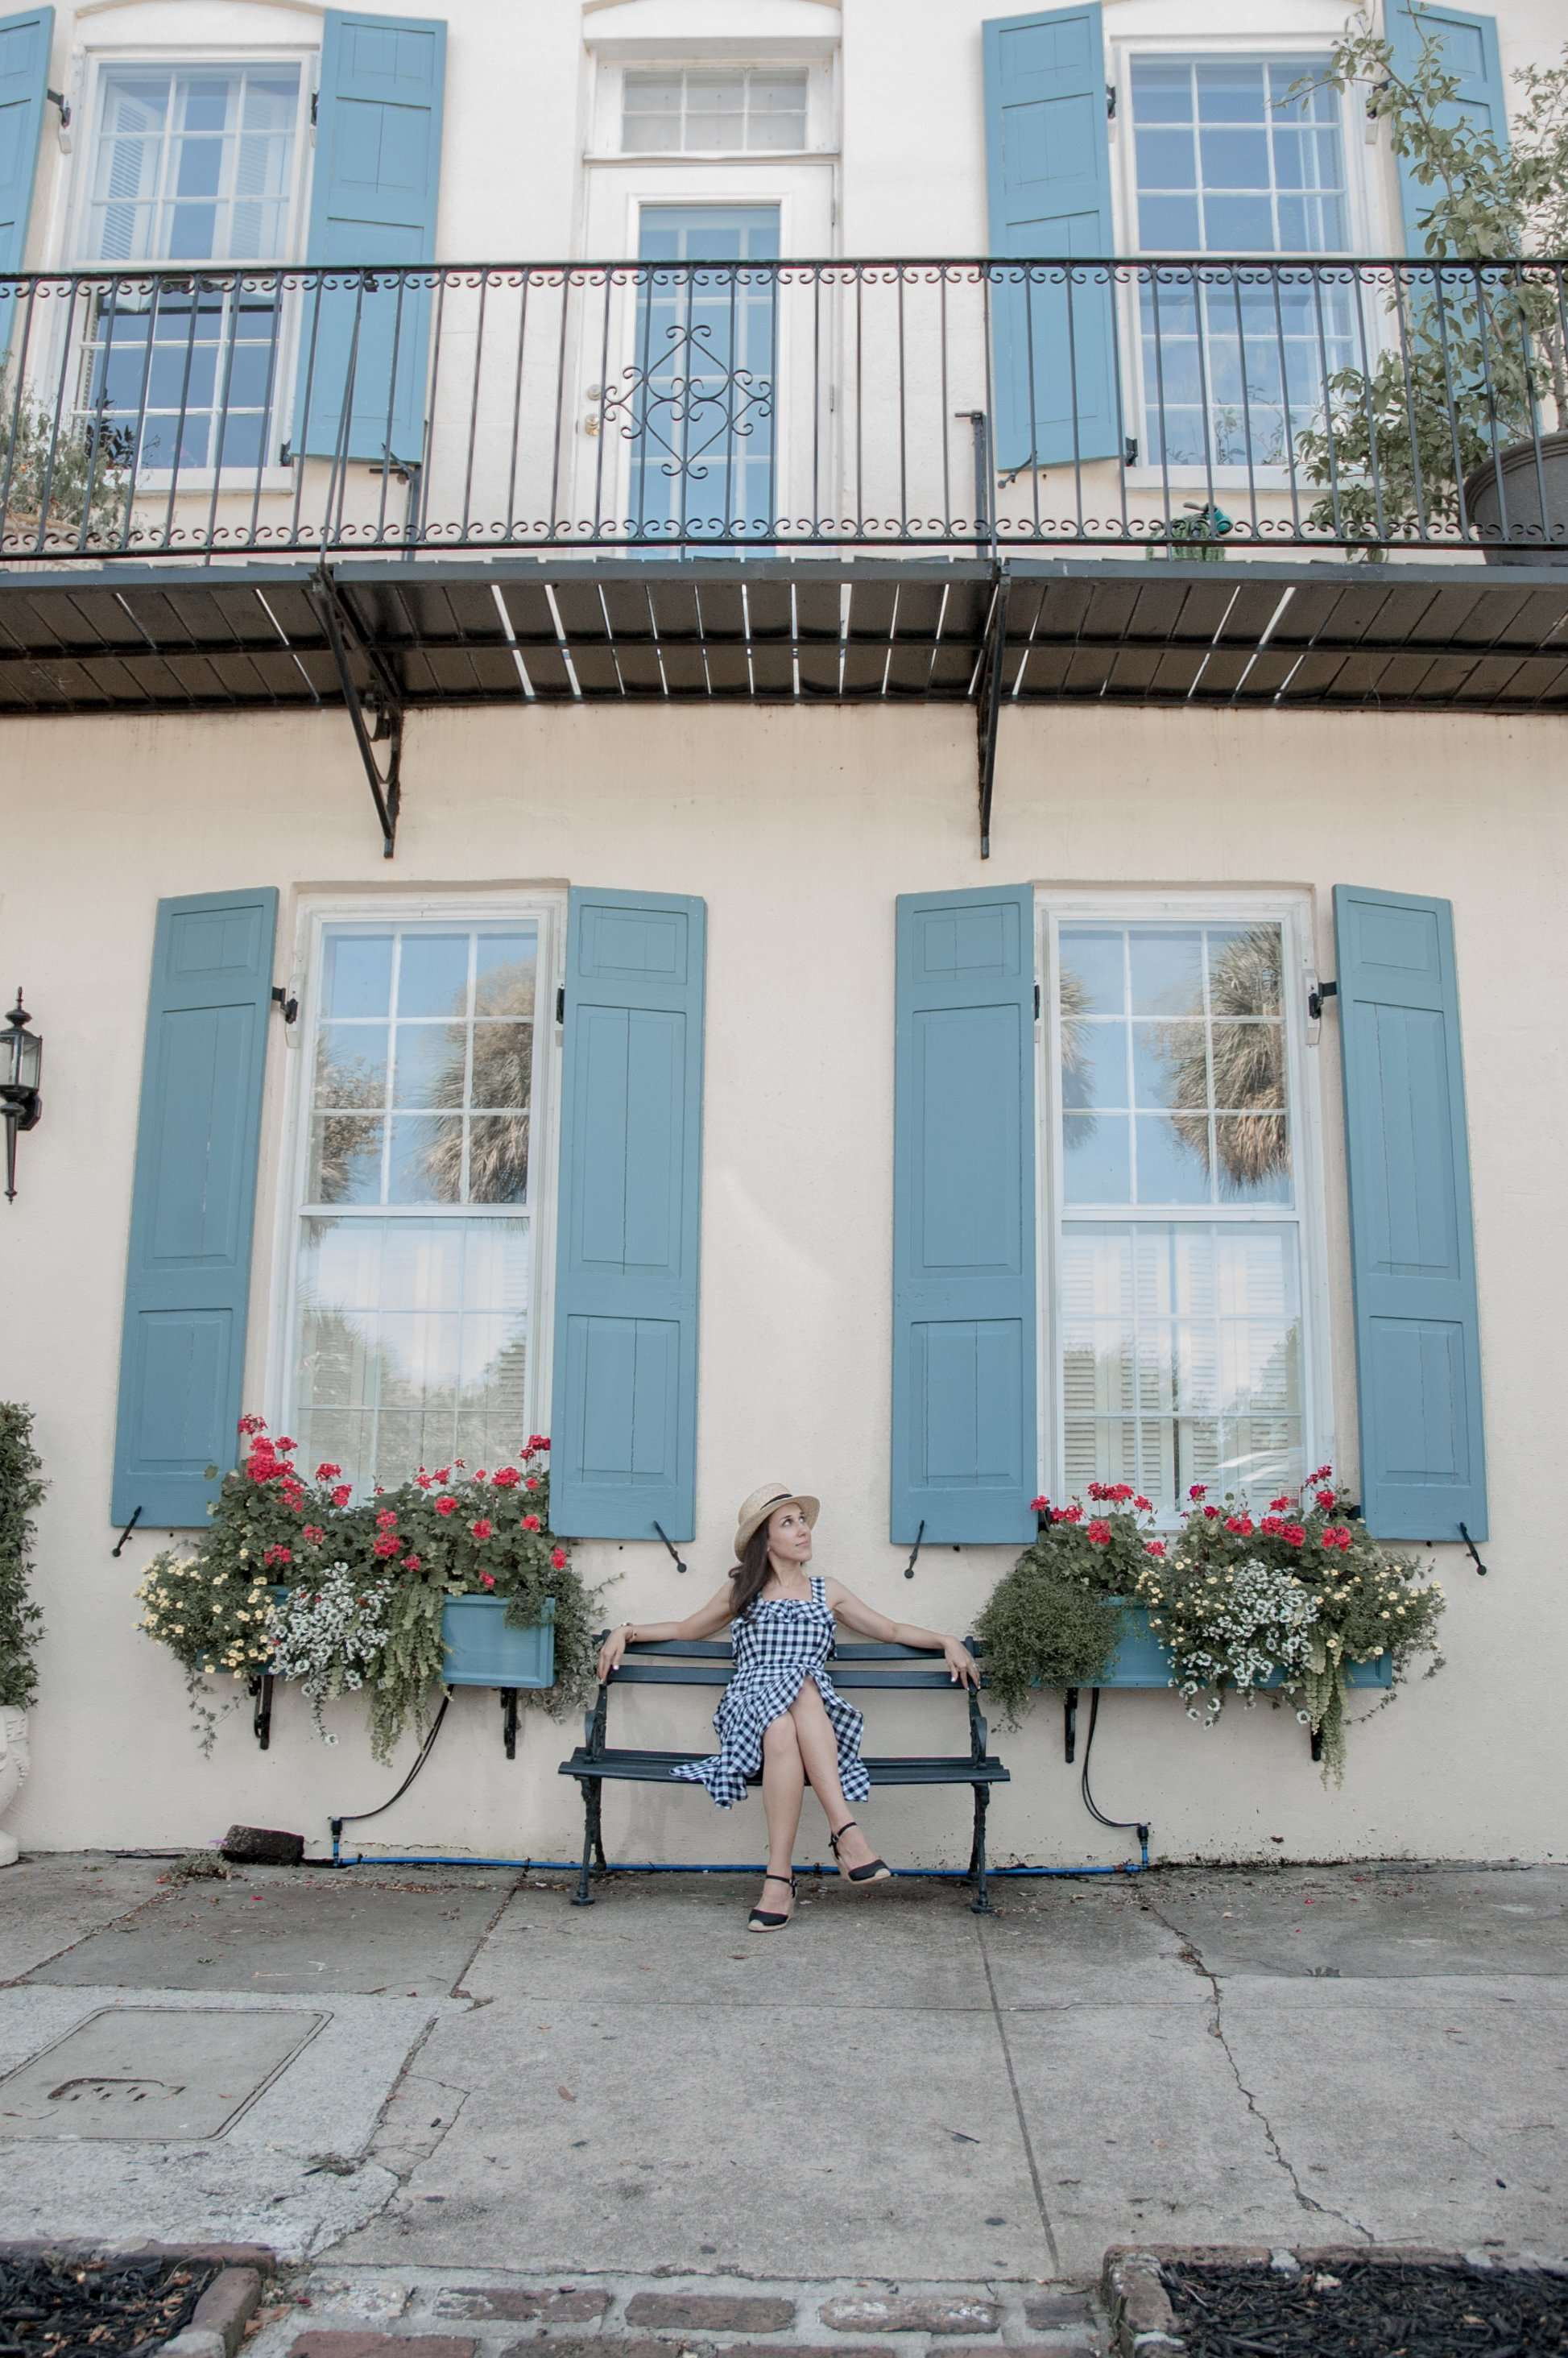 Enjoying the Architecture in the French Quarter